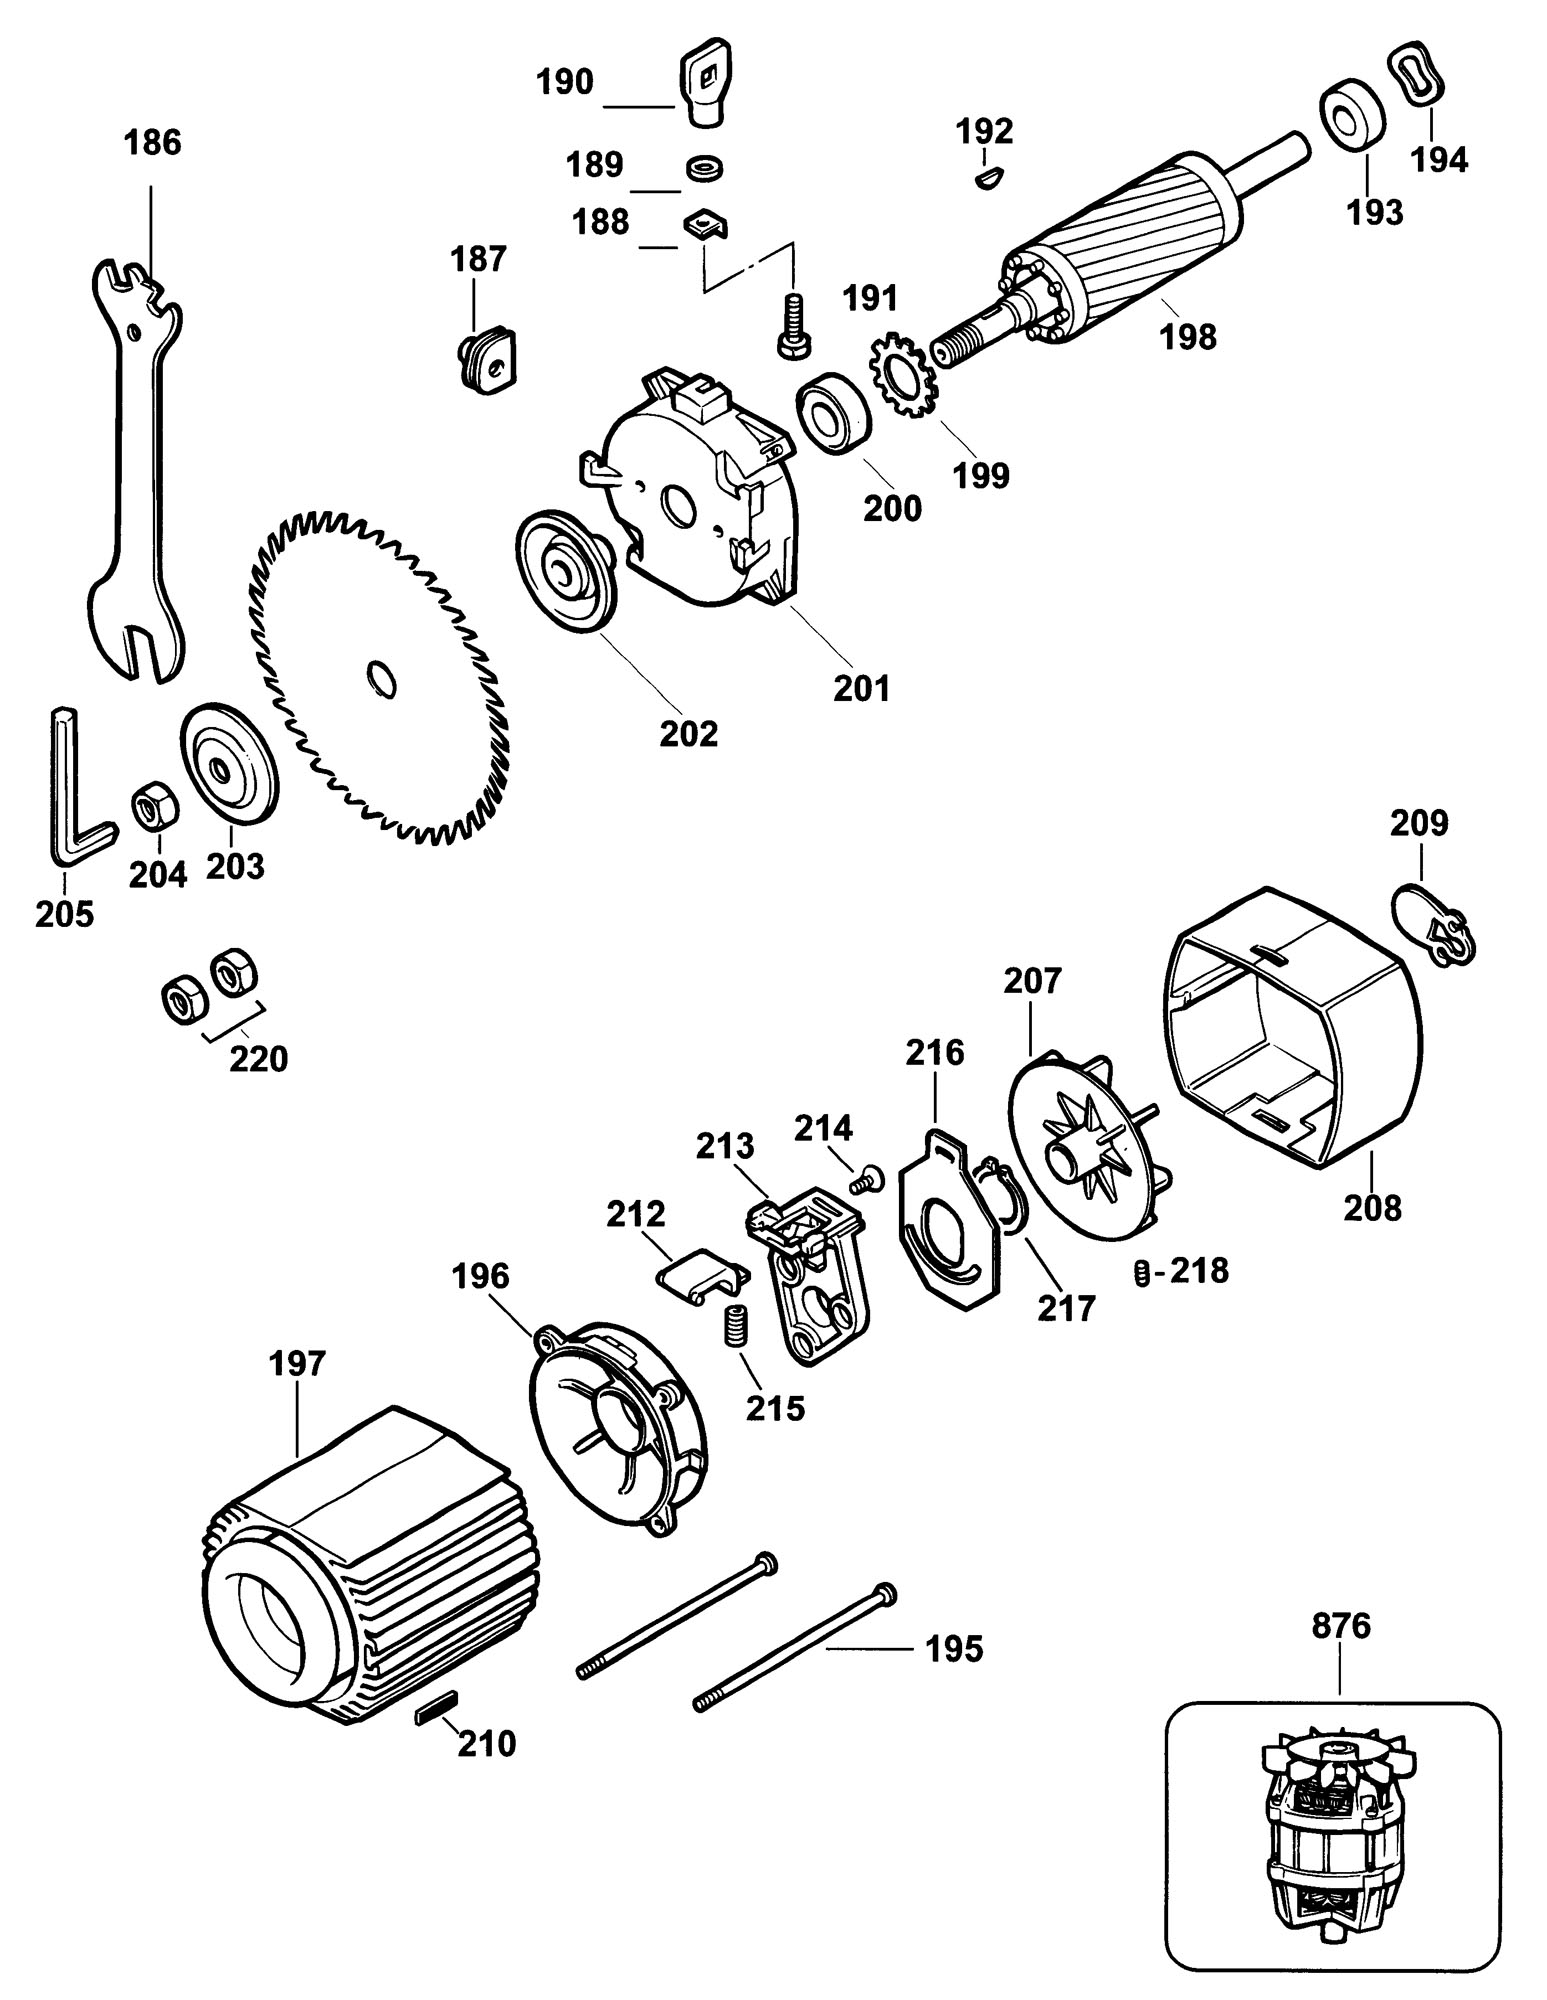 diagram denso wiring 210 4284 auto electrical wiring diagram diagram denso wiring 210 4284